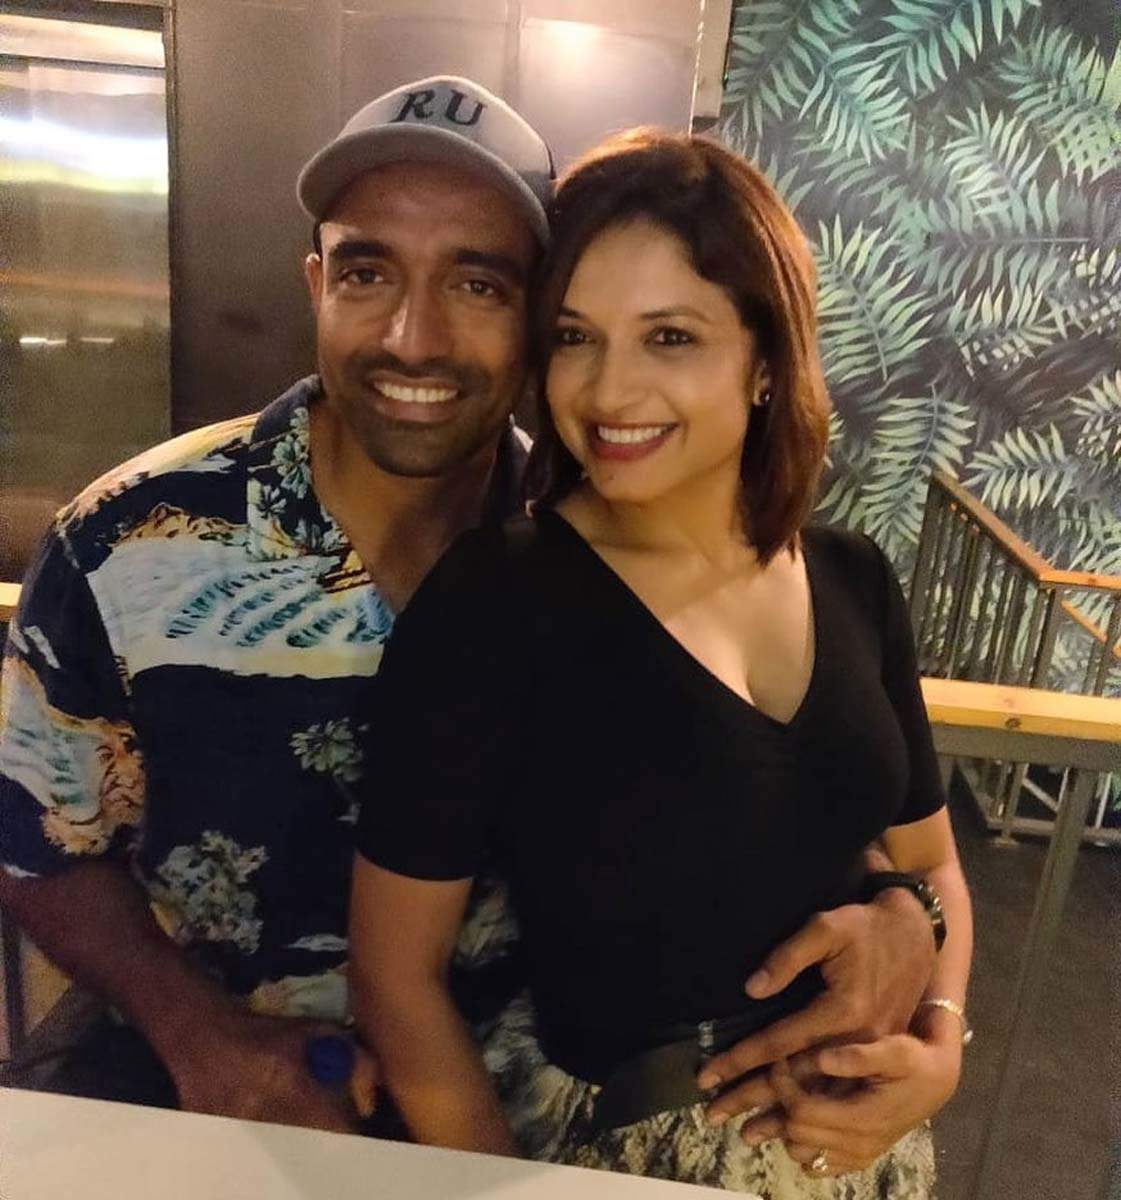 Robin Uthappa and his wife former tennis player Sheethal give major couple goals